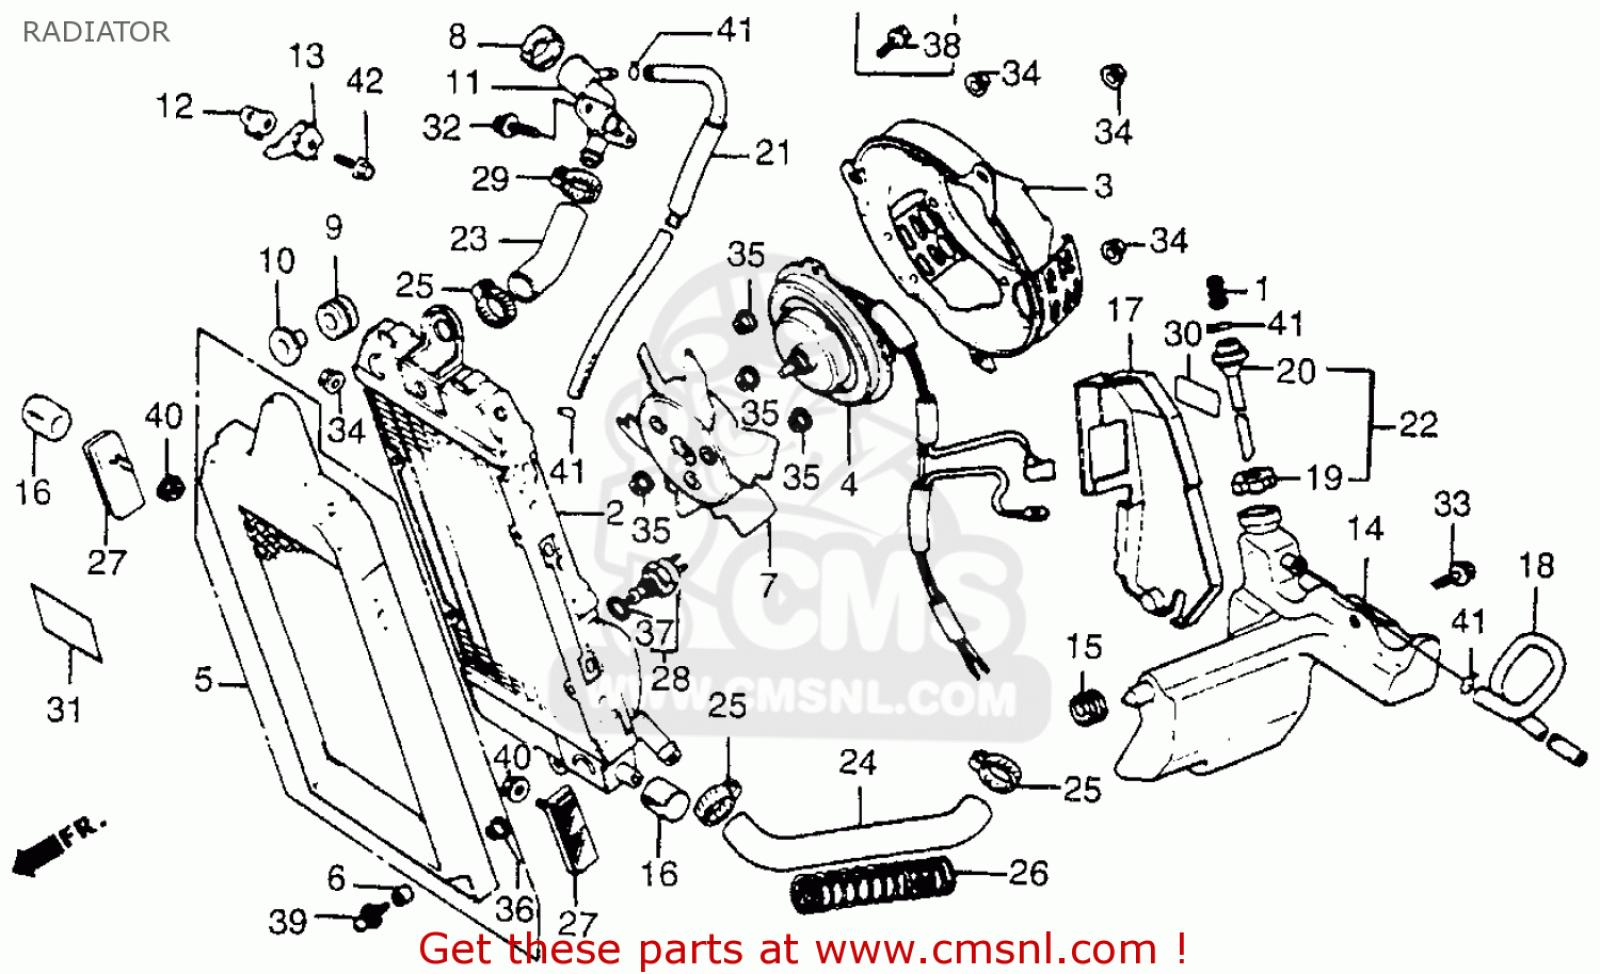 Vt500 Wiring Diagram Library 01 400ex Engine 800 1024 1280 1600 Origin Honda Vt500c